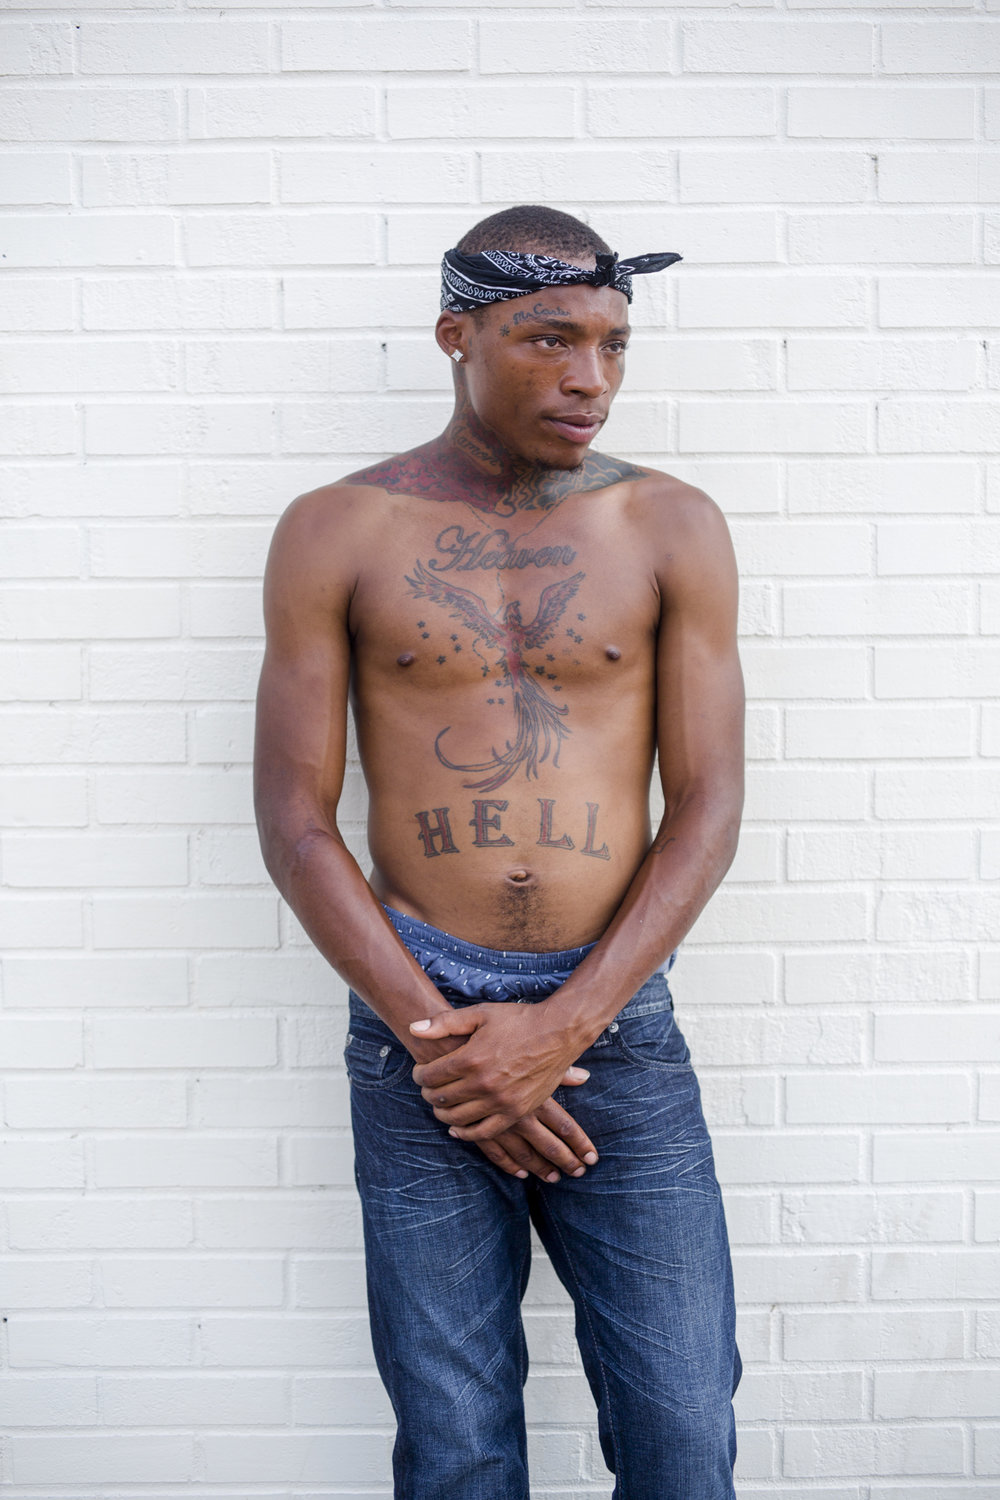 A Ferguson resident photographed against the wall of an approved assembly area he has taken to manning and keeping stocked with supplies and refreshments to aid the protesters, police, clergy and police along West Florissant avenue. Aug. 22, 2014.